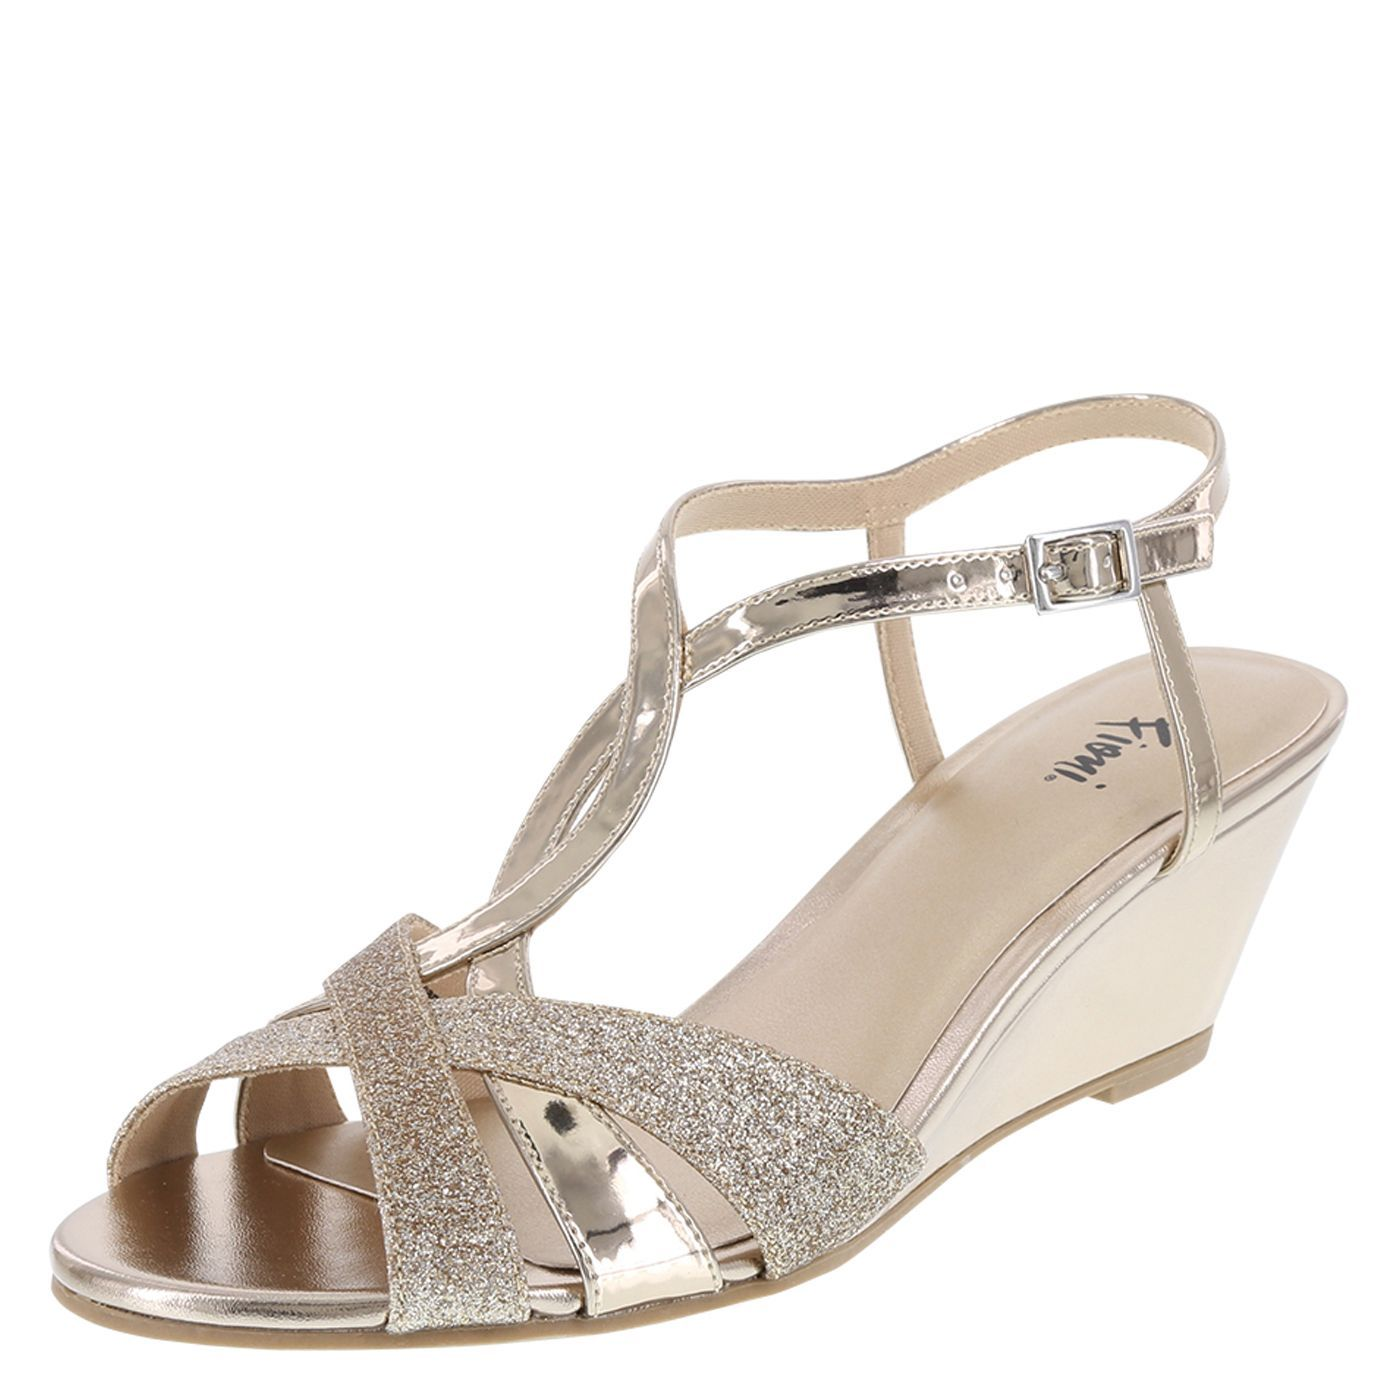 Fioni Grace Women's Low Heel Wedge | Payless #SandalsHeels